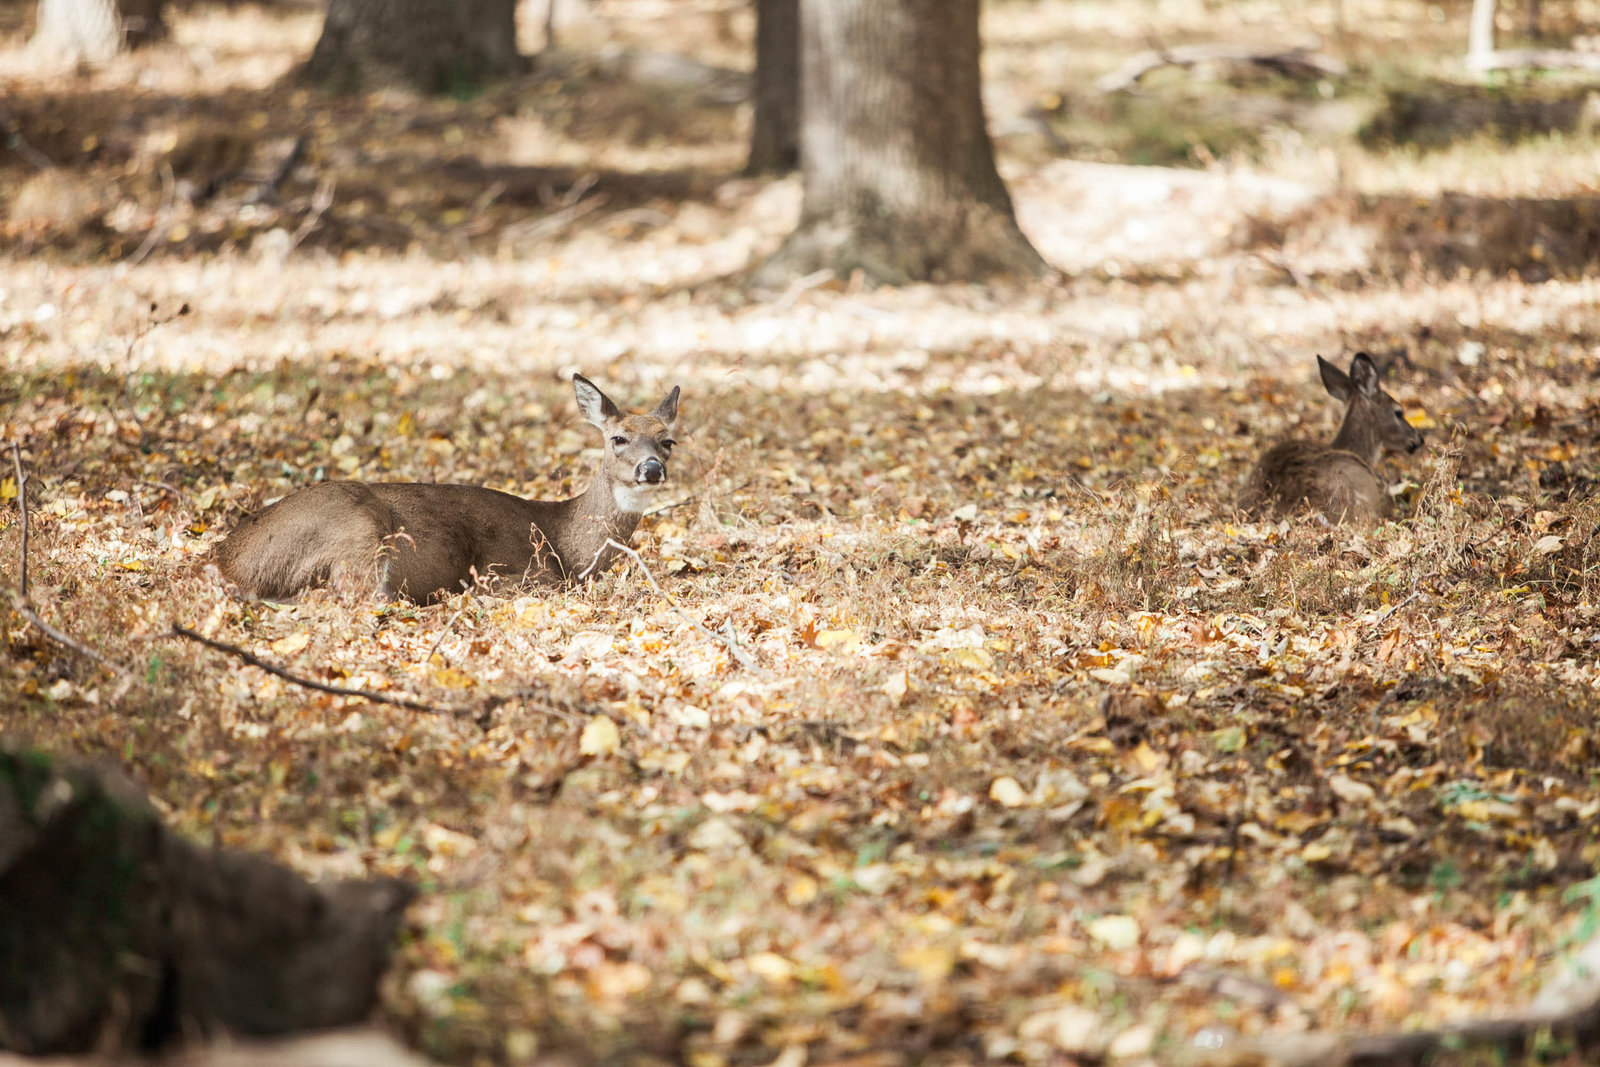 deer-valley-forge-park-pennsylvania-nature-kate-timbers-photography-2390